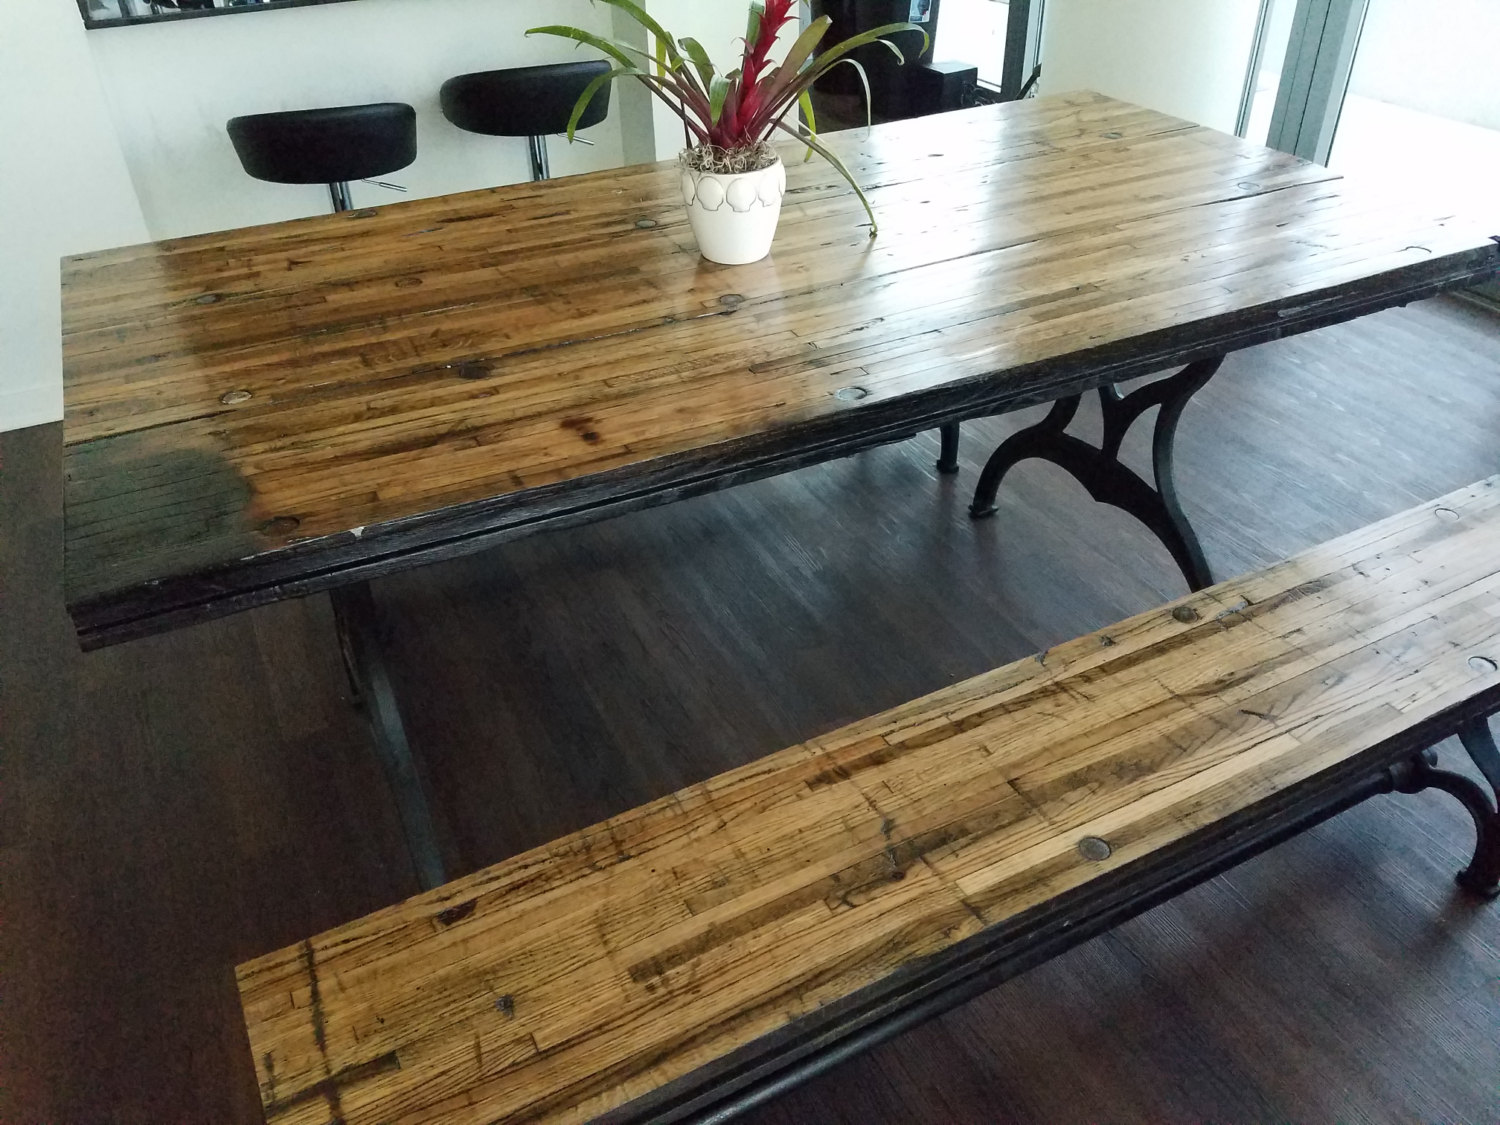 reclaimed oak boxcar plank table with benches recycled vintage antique rustic reclaimed oak boxcar plank table with benches recycled vintage      rh   chrisknightcreations com